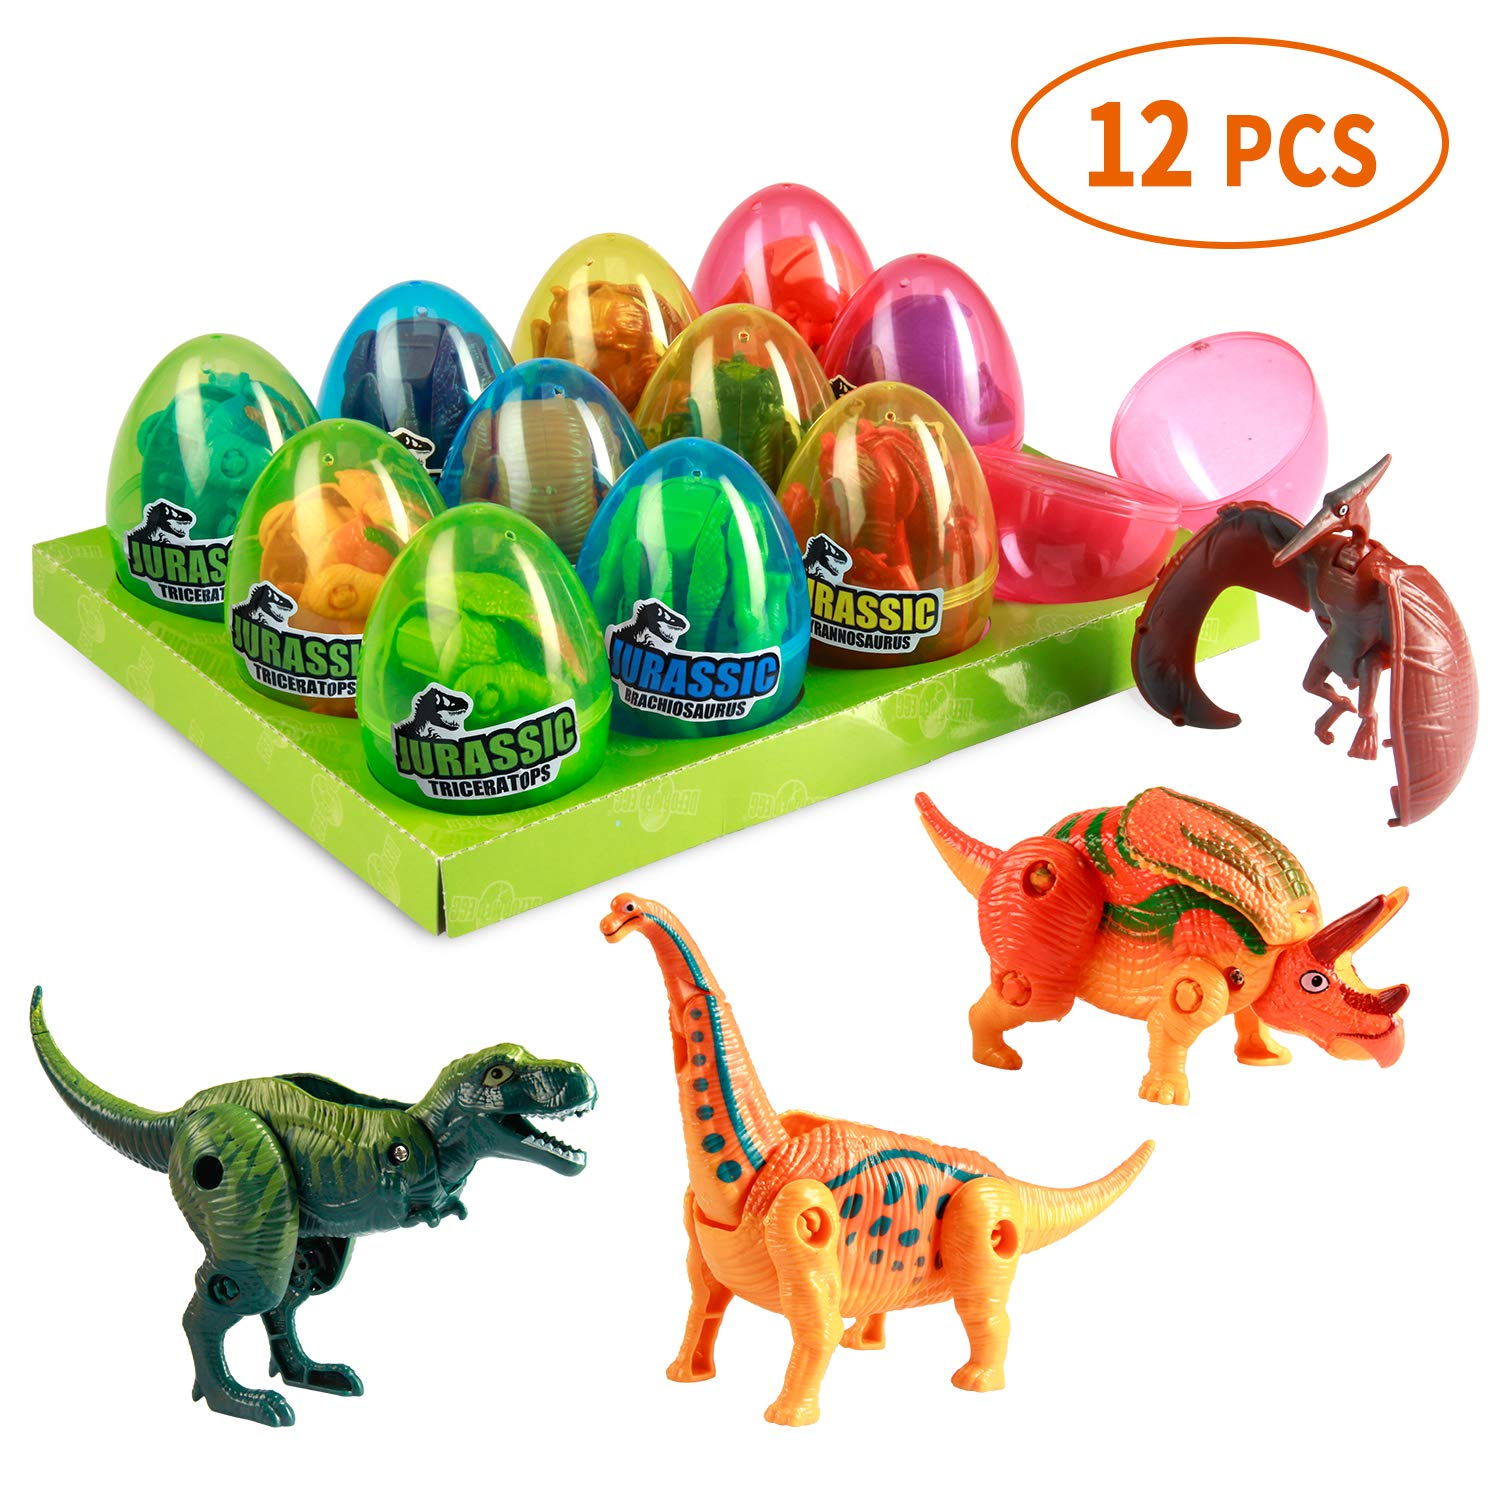 MONILON Dinosaur Toys, 12 Pcs Easter Eggs Basket Stuffers Deformable Dinosaur Desktop Decorations Eggs- Party Favors Kids Easter Gifts Toys for Kids Boys Girls Ages 3 4 5 6 7, 8 - 12 Years Old